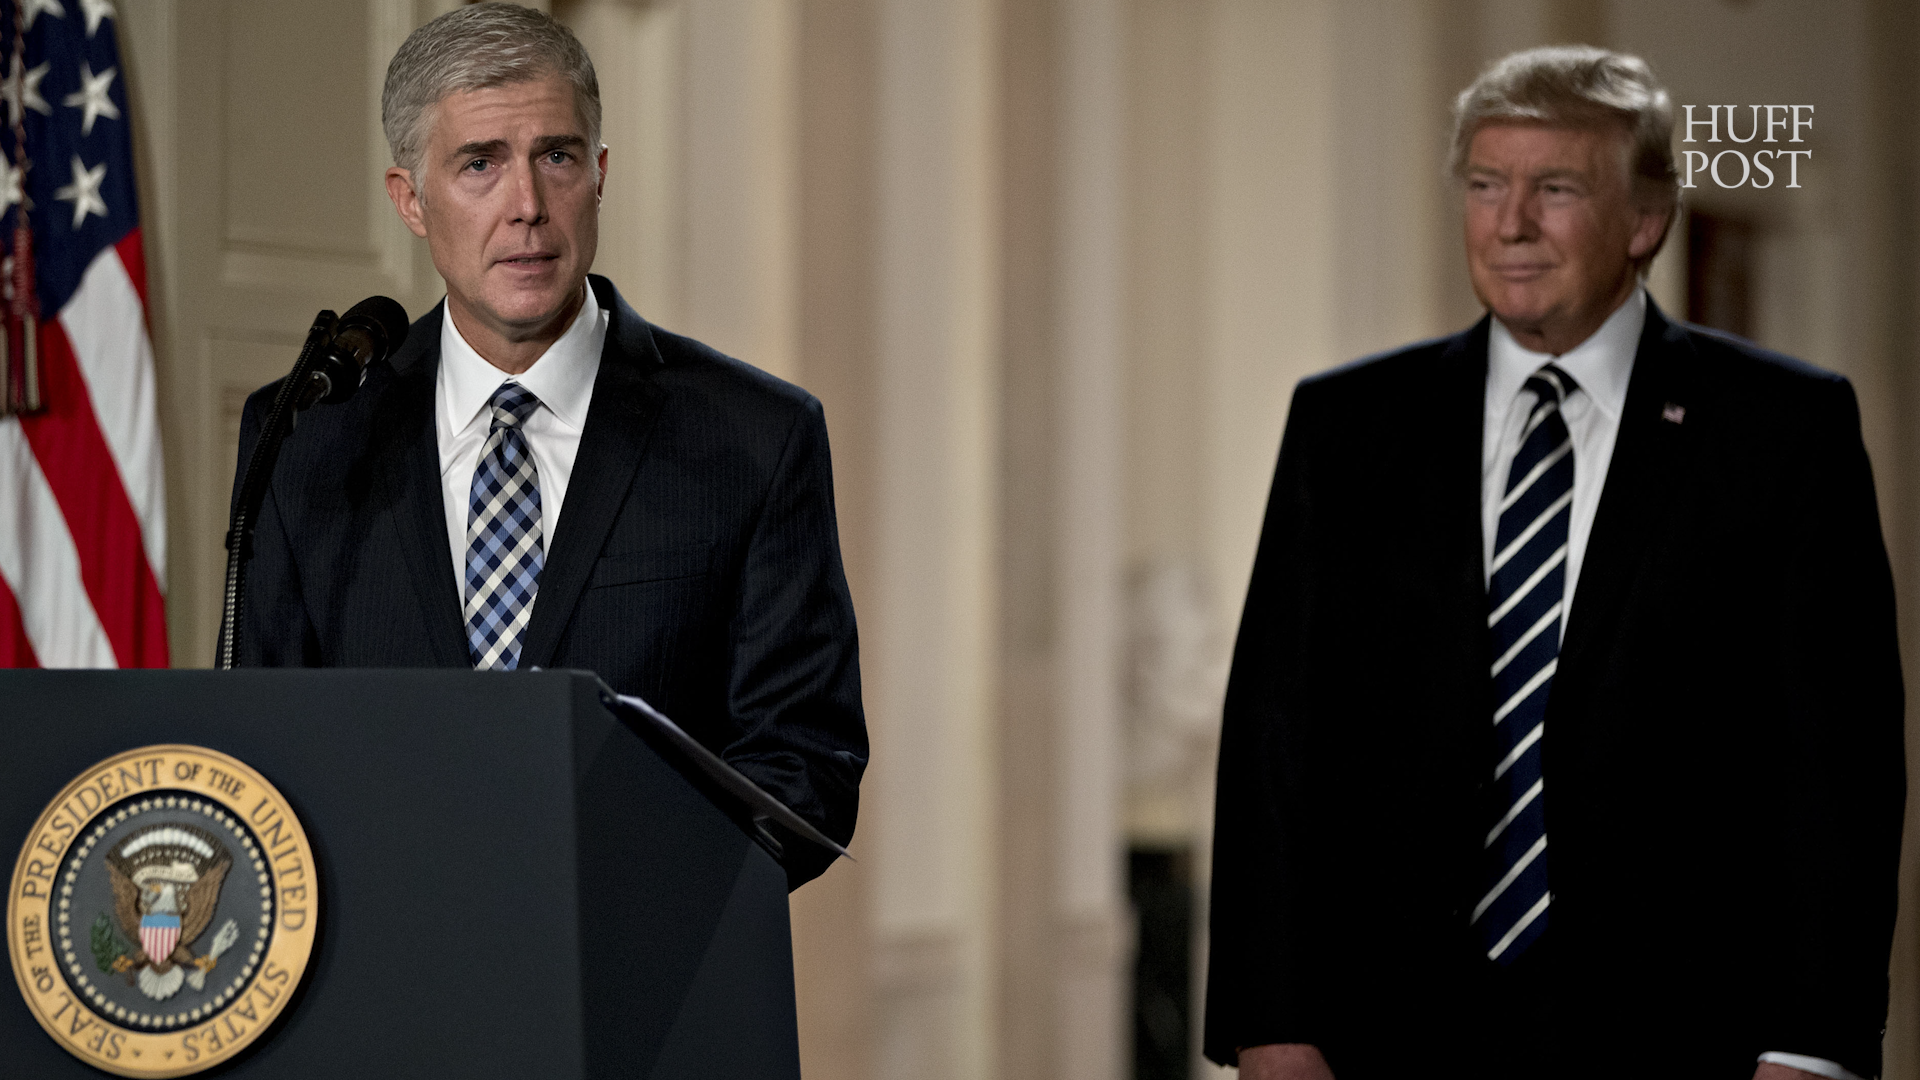 Neil Gorsuch Relied On A Legal Standard That Weakens Promises To Kids With Disabilities